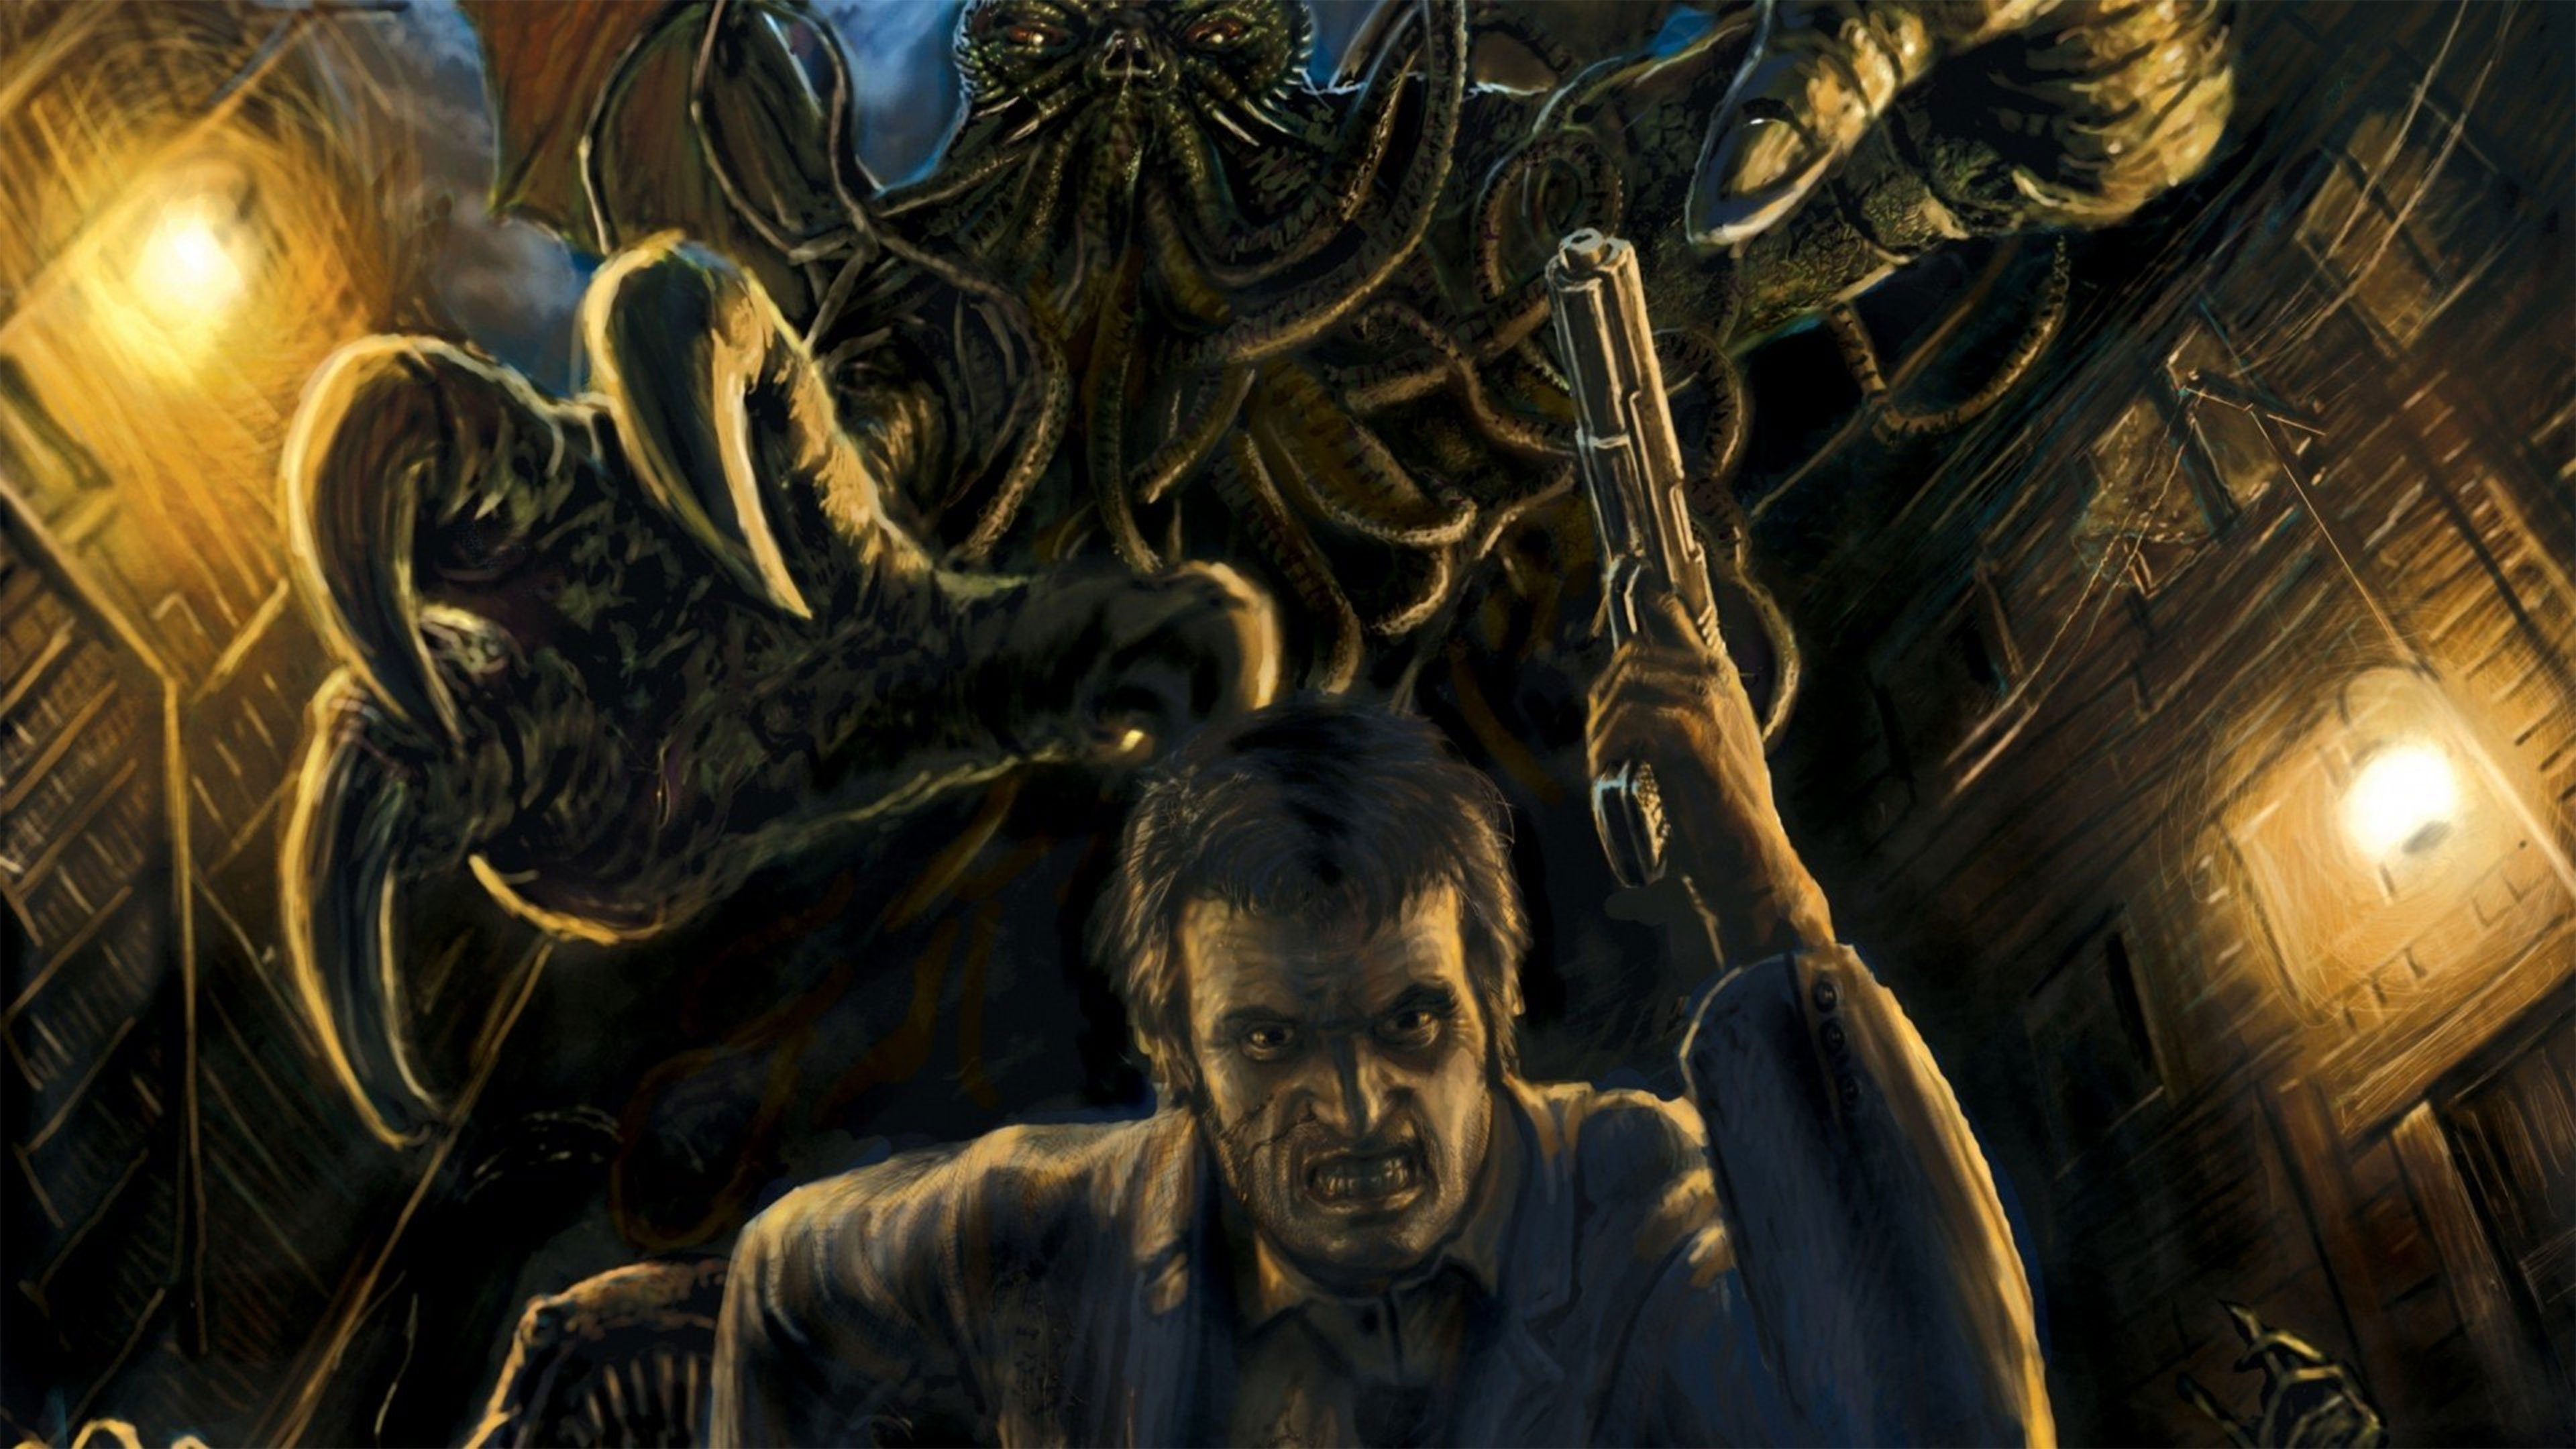 call of cthulhu wallpapers in ultra hd 4k